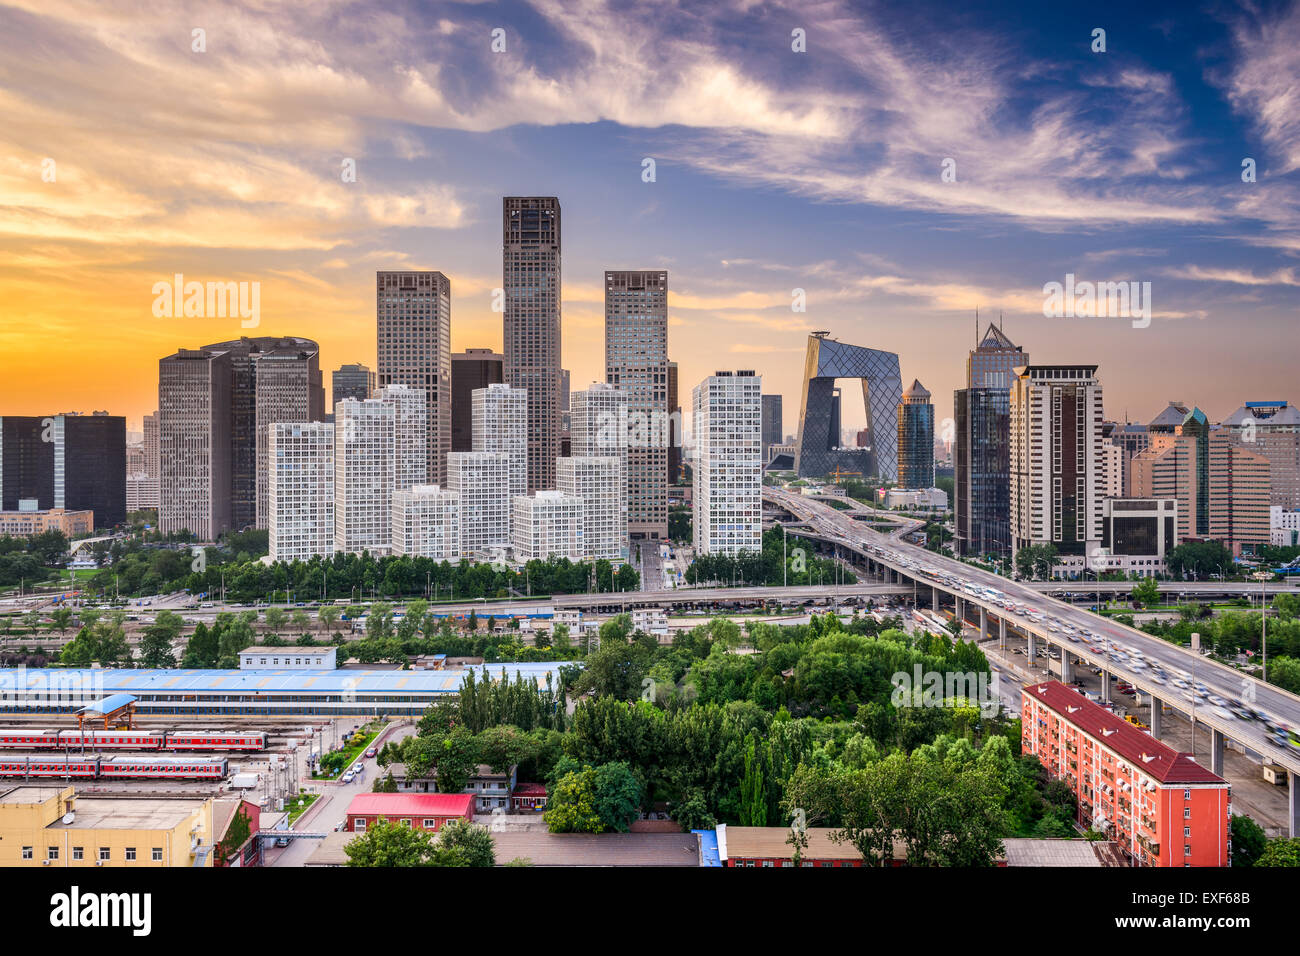 Beijing, China financial district at dusk. - Stock Image